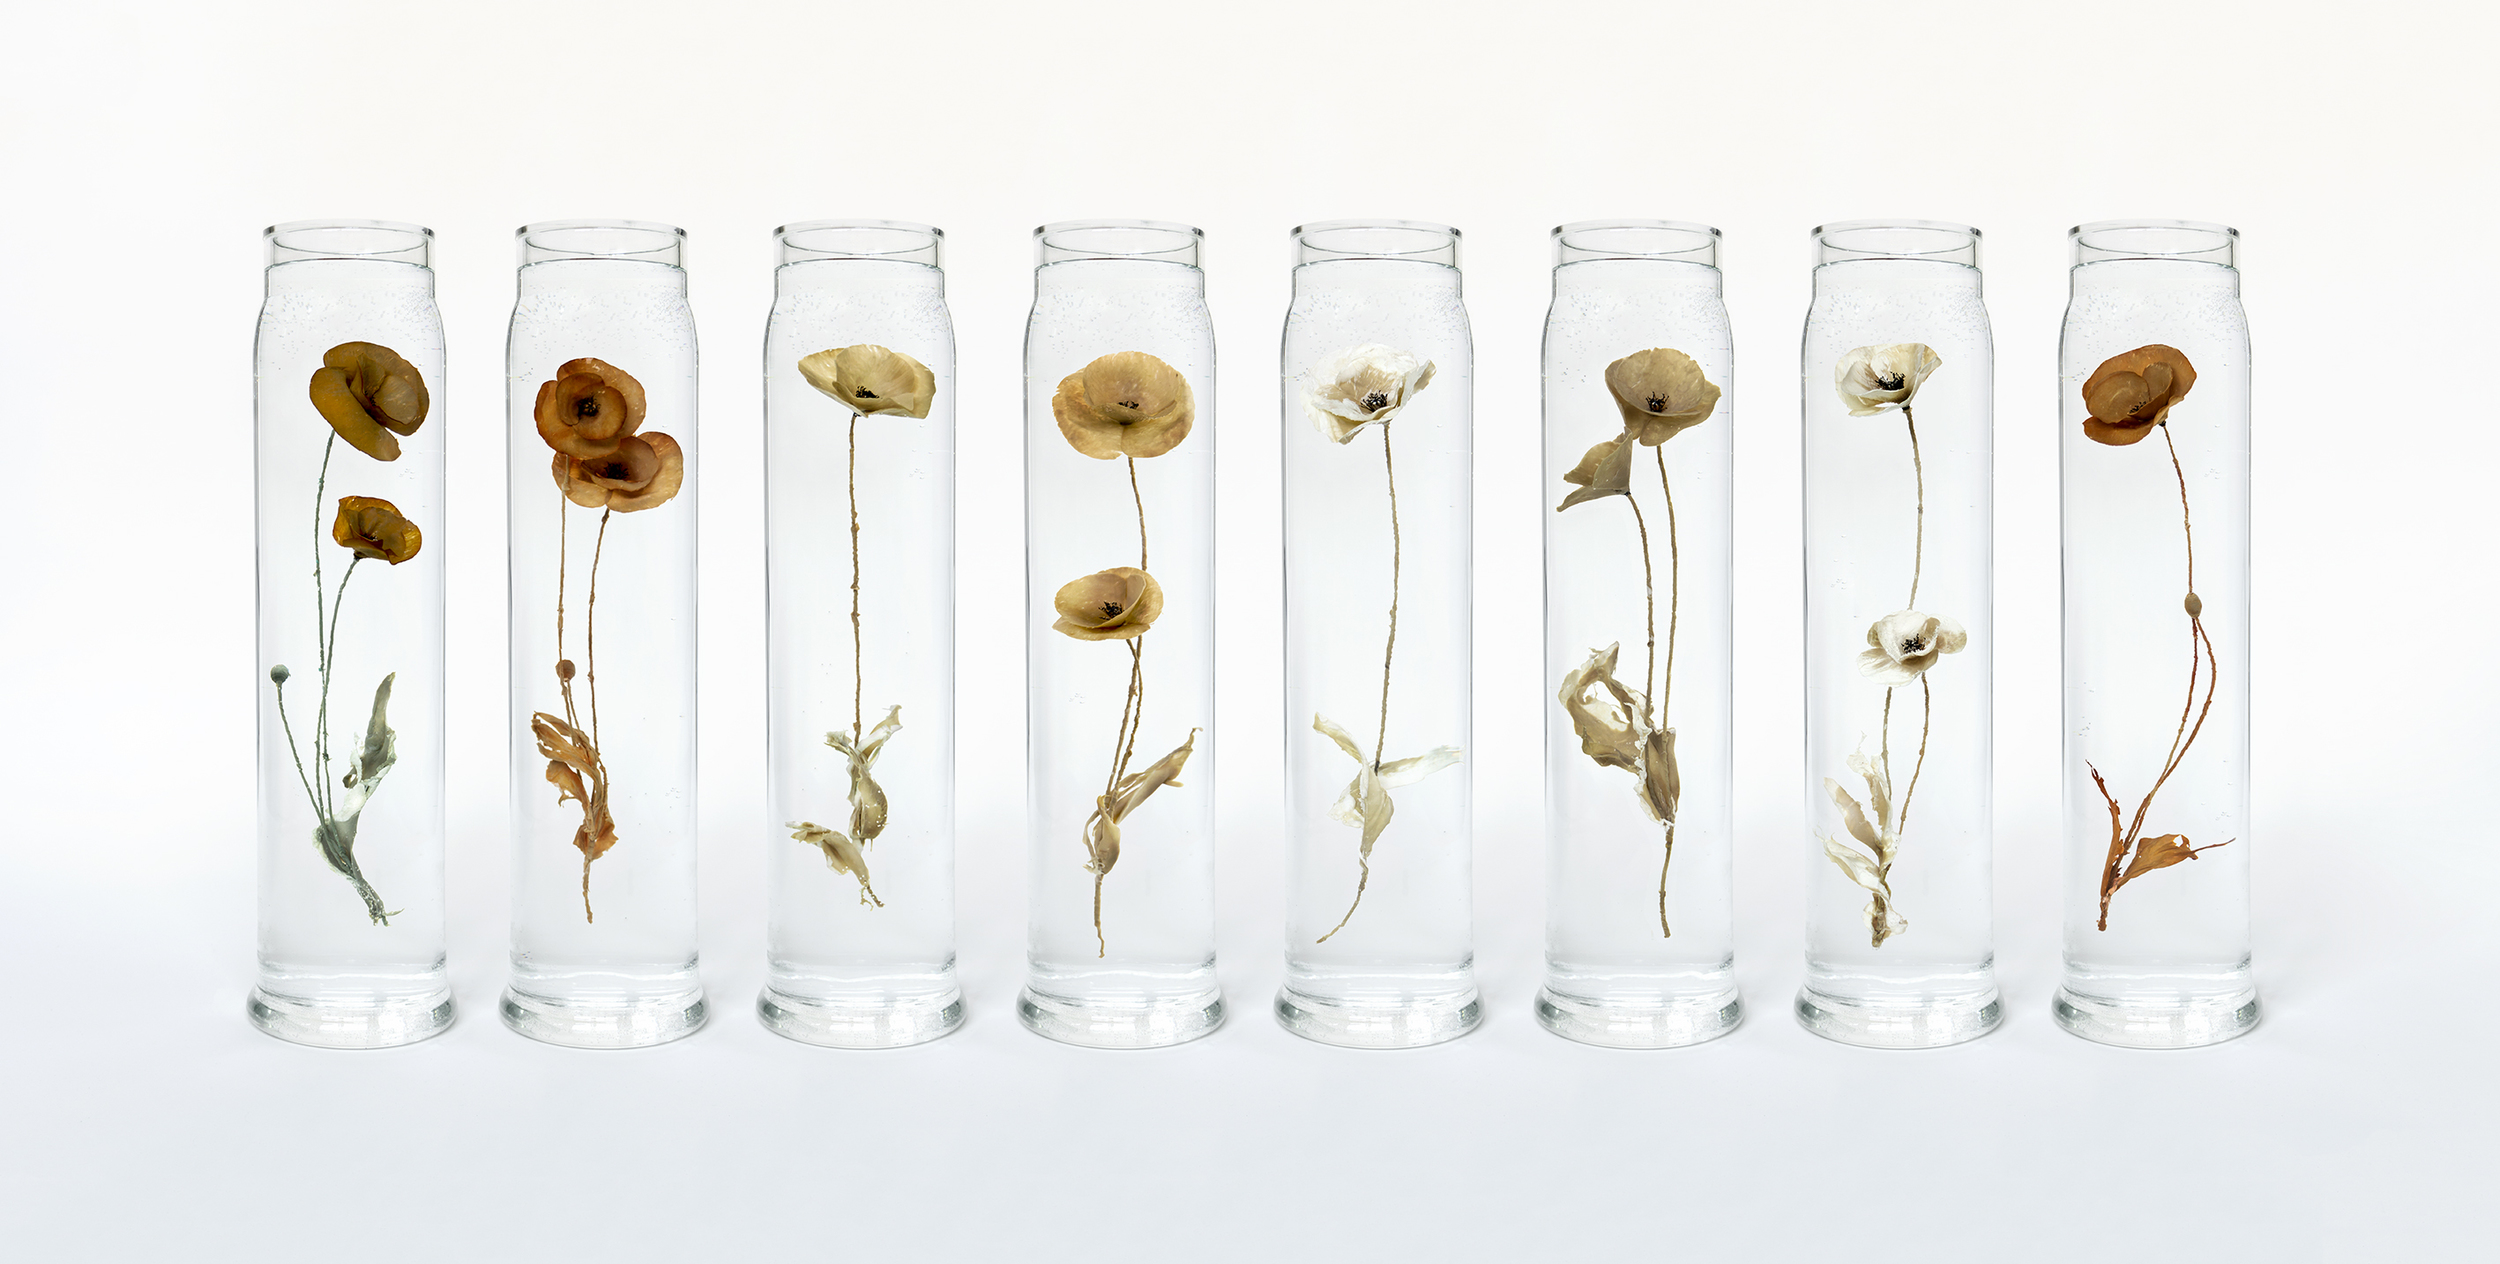 Papaver Rhoeas Line Up. Lamb's heart tissue, glass, water. 2017